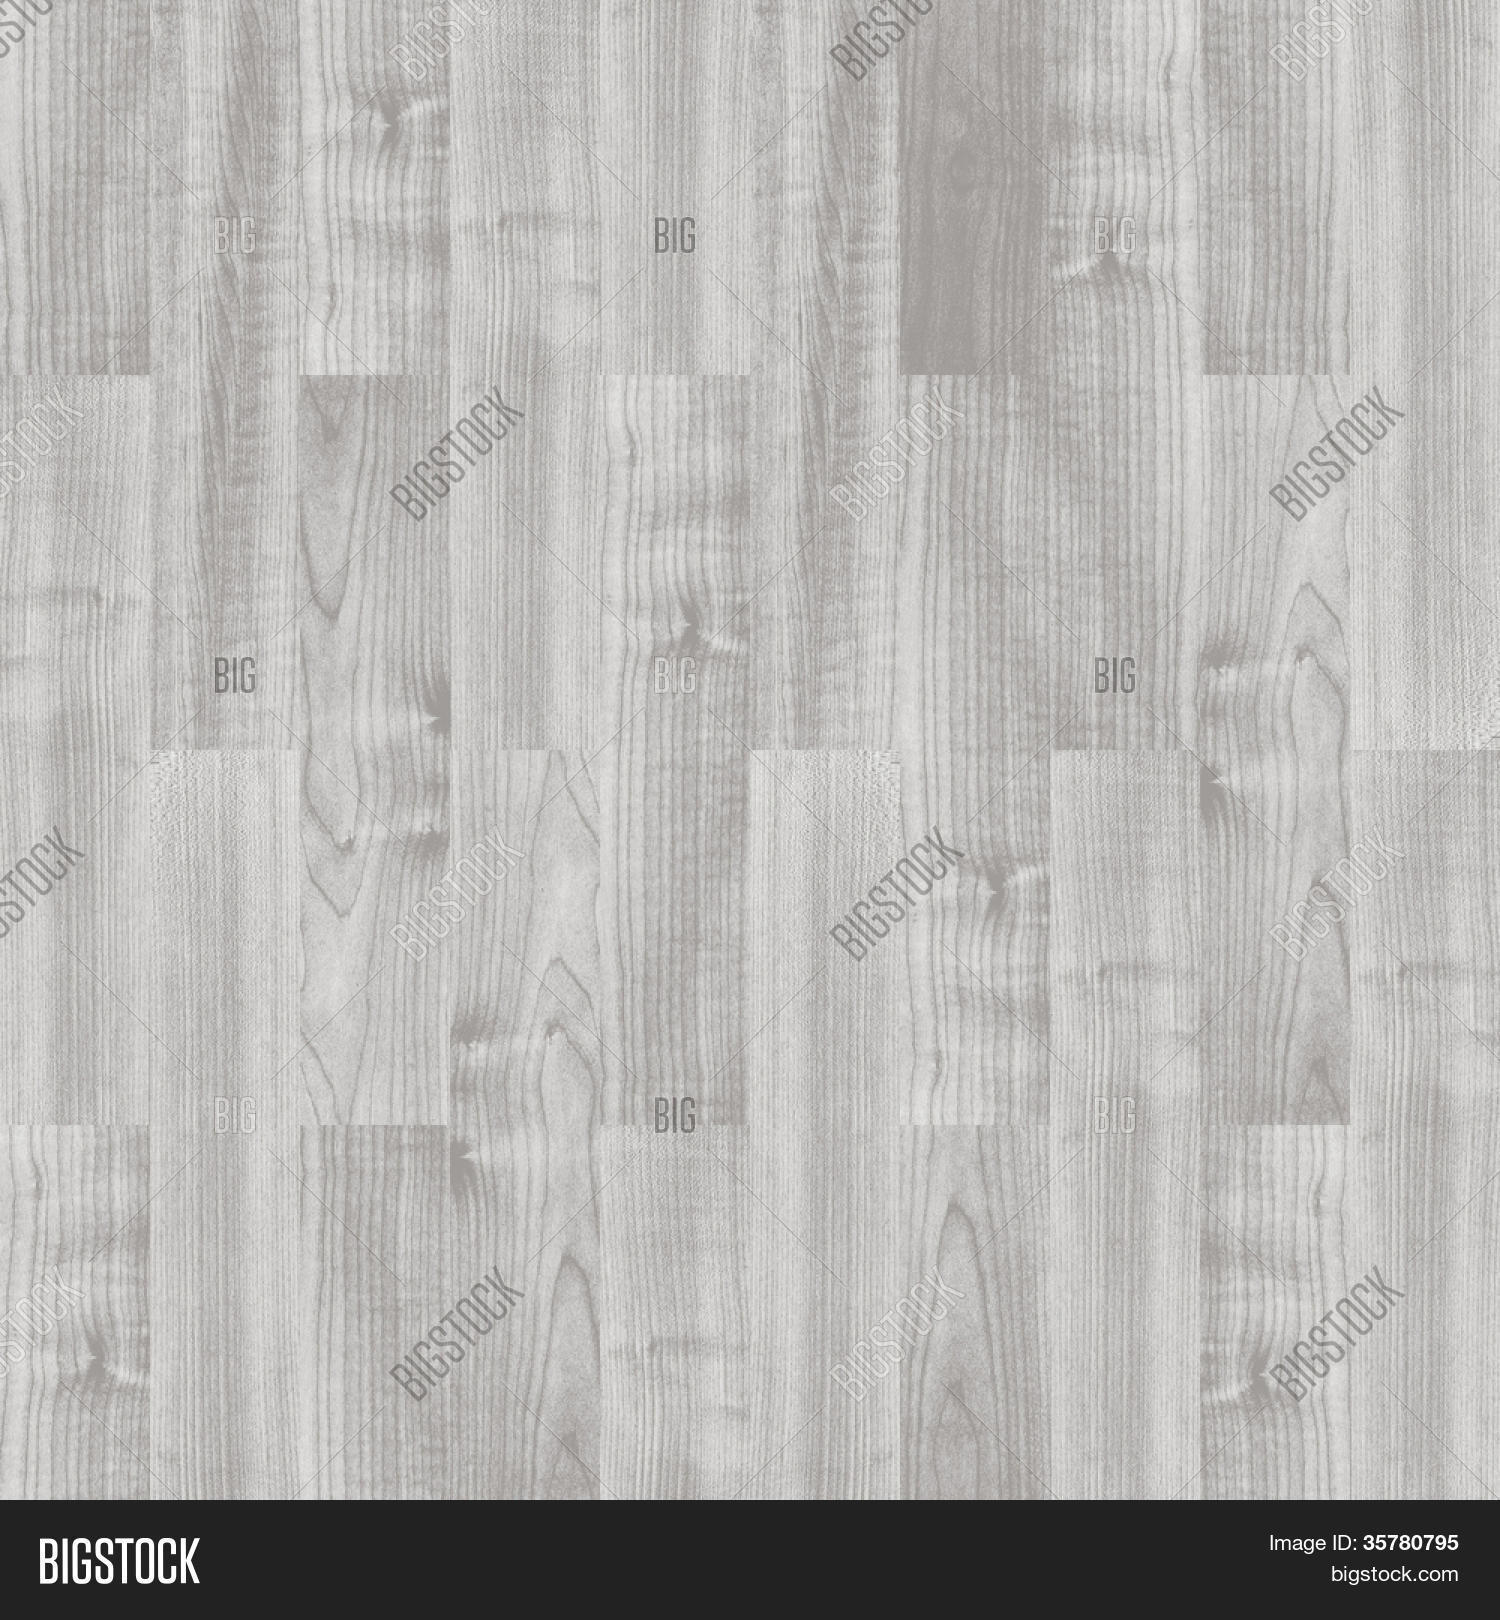 light grey parquet seamless pattern image photo bigstock. Black Bedroom Furniture Sets. Home Design Ideas